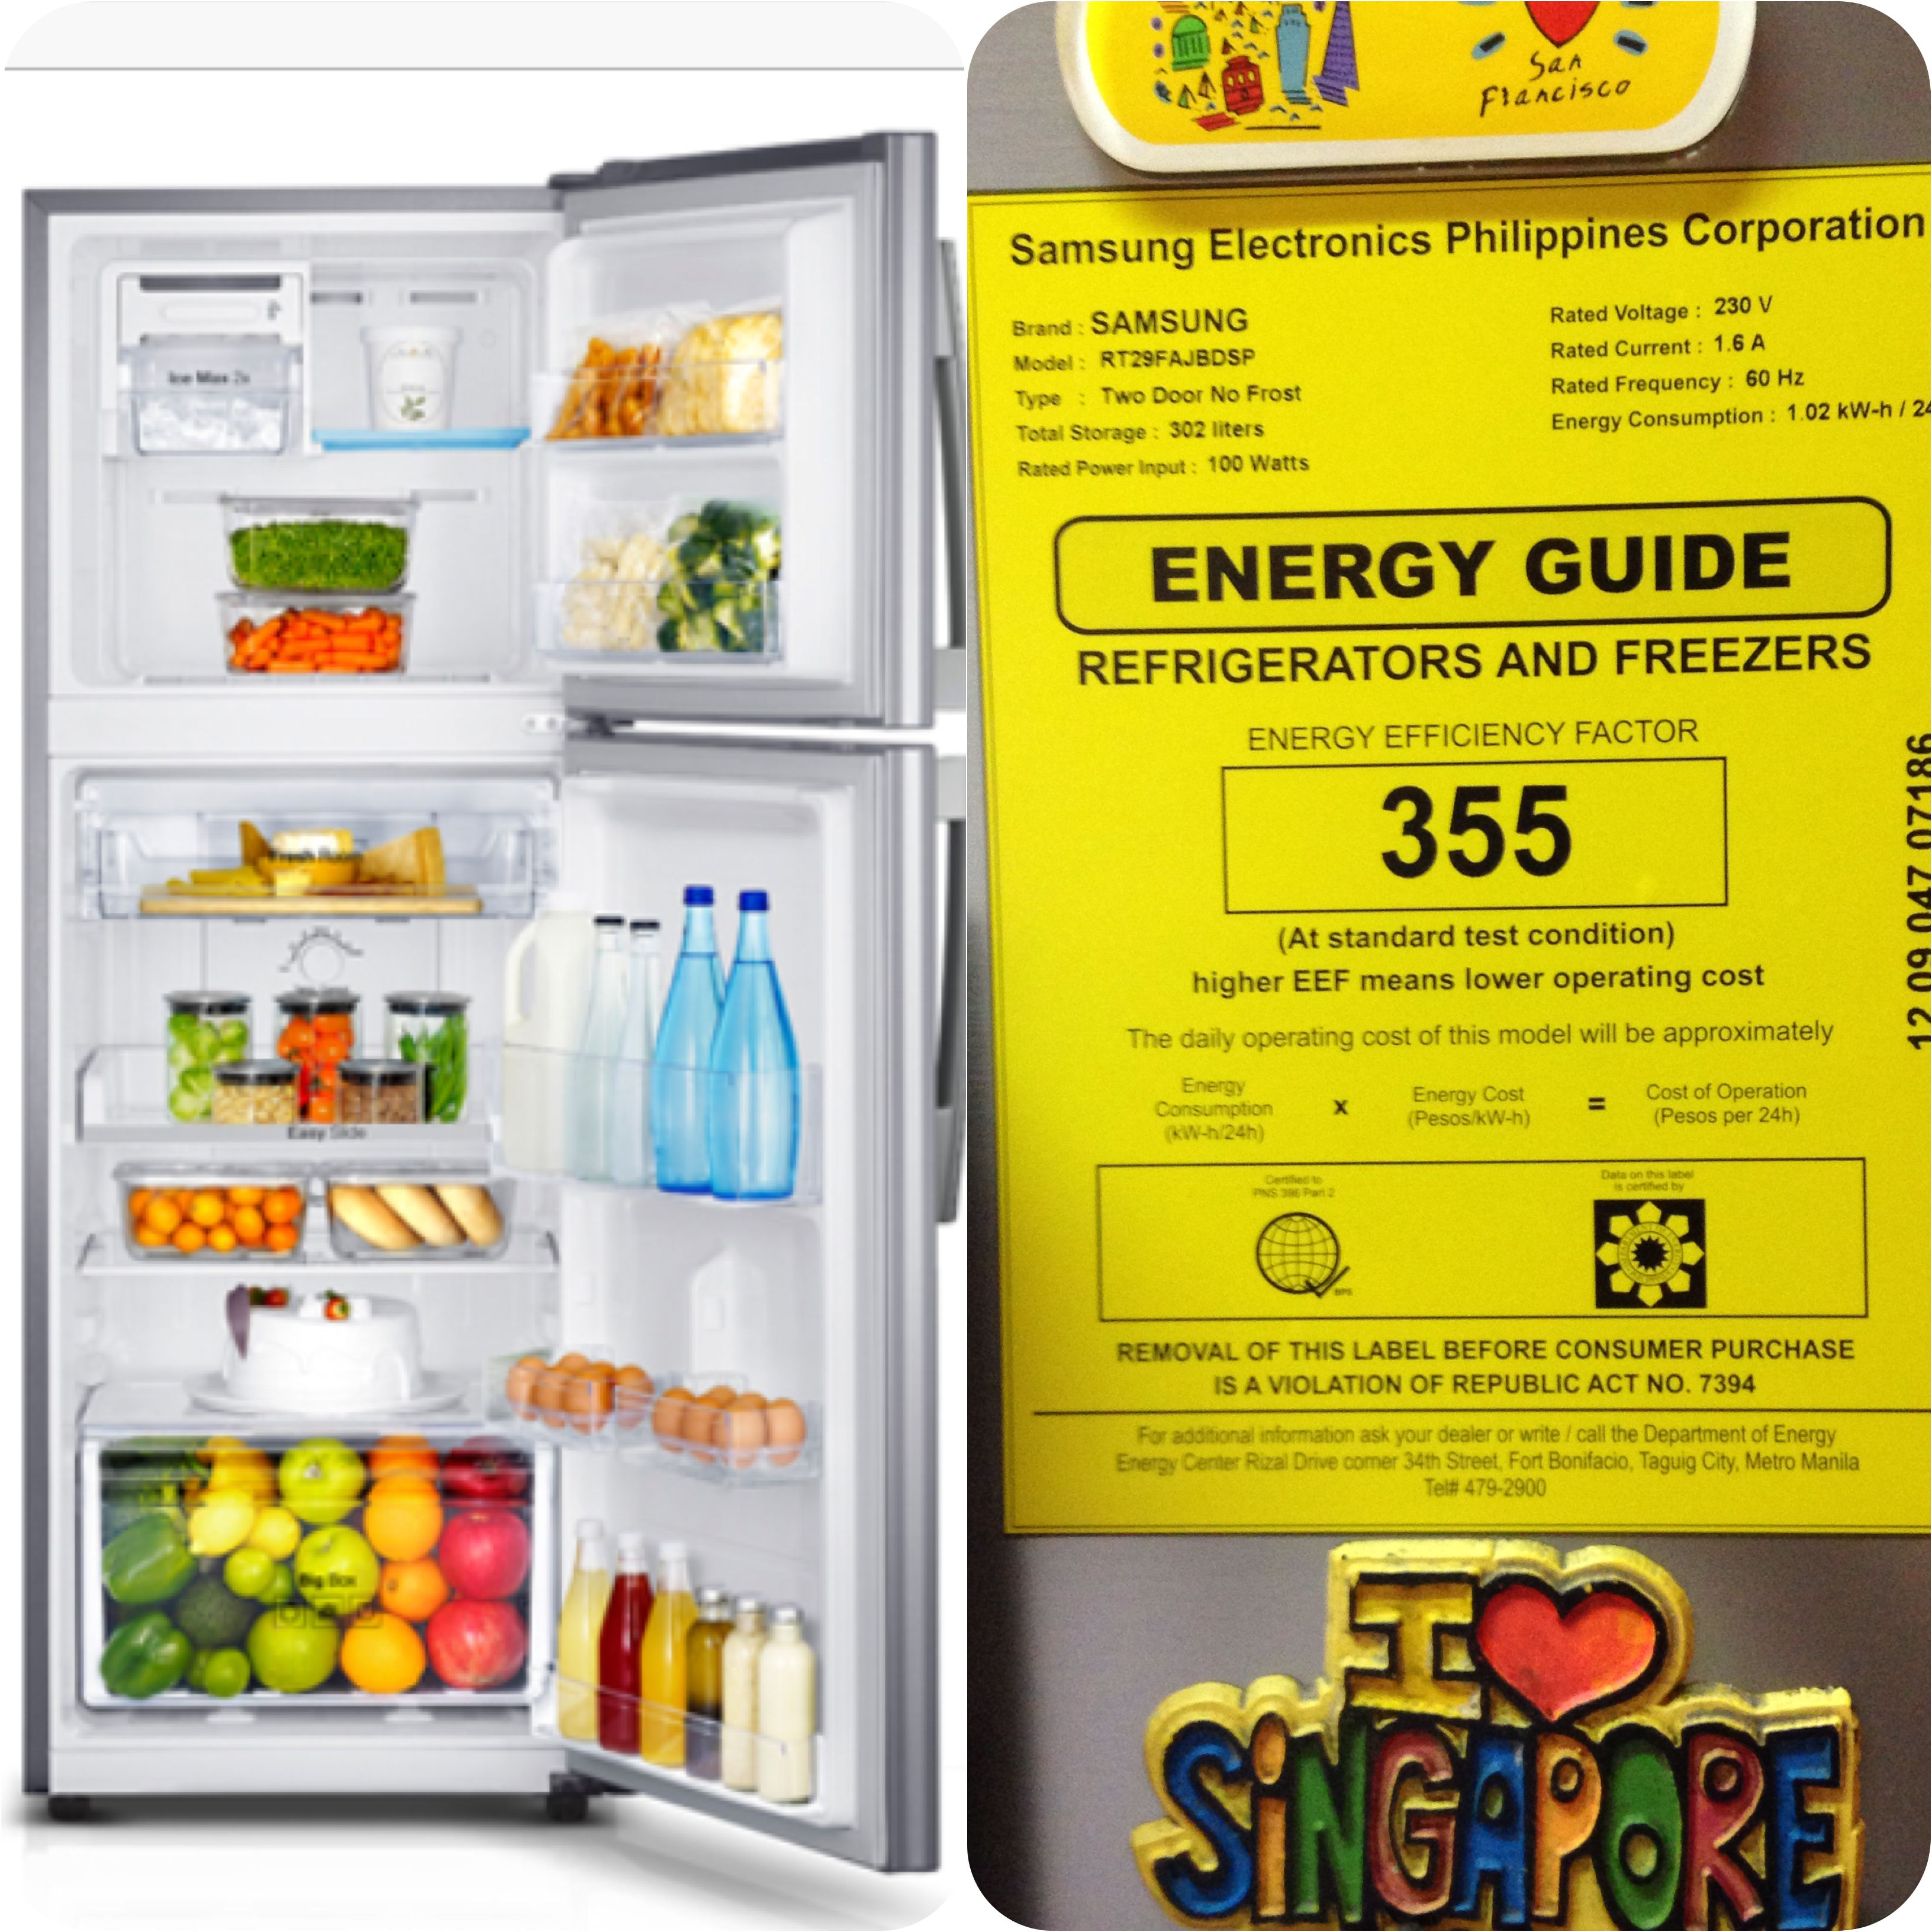 Samsung Digital Inverter No Frost 10 7 Cu Ft Refrigerator Bearing The Philippines Department Of E Energy Efficiency Rating Save Electricity Refrigerator